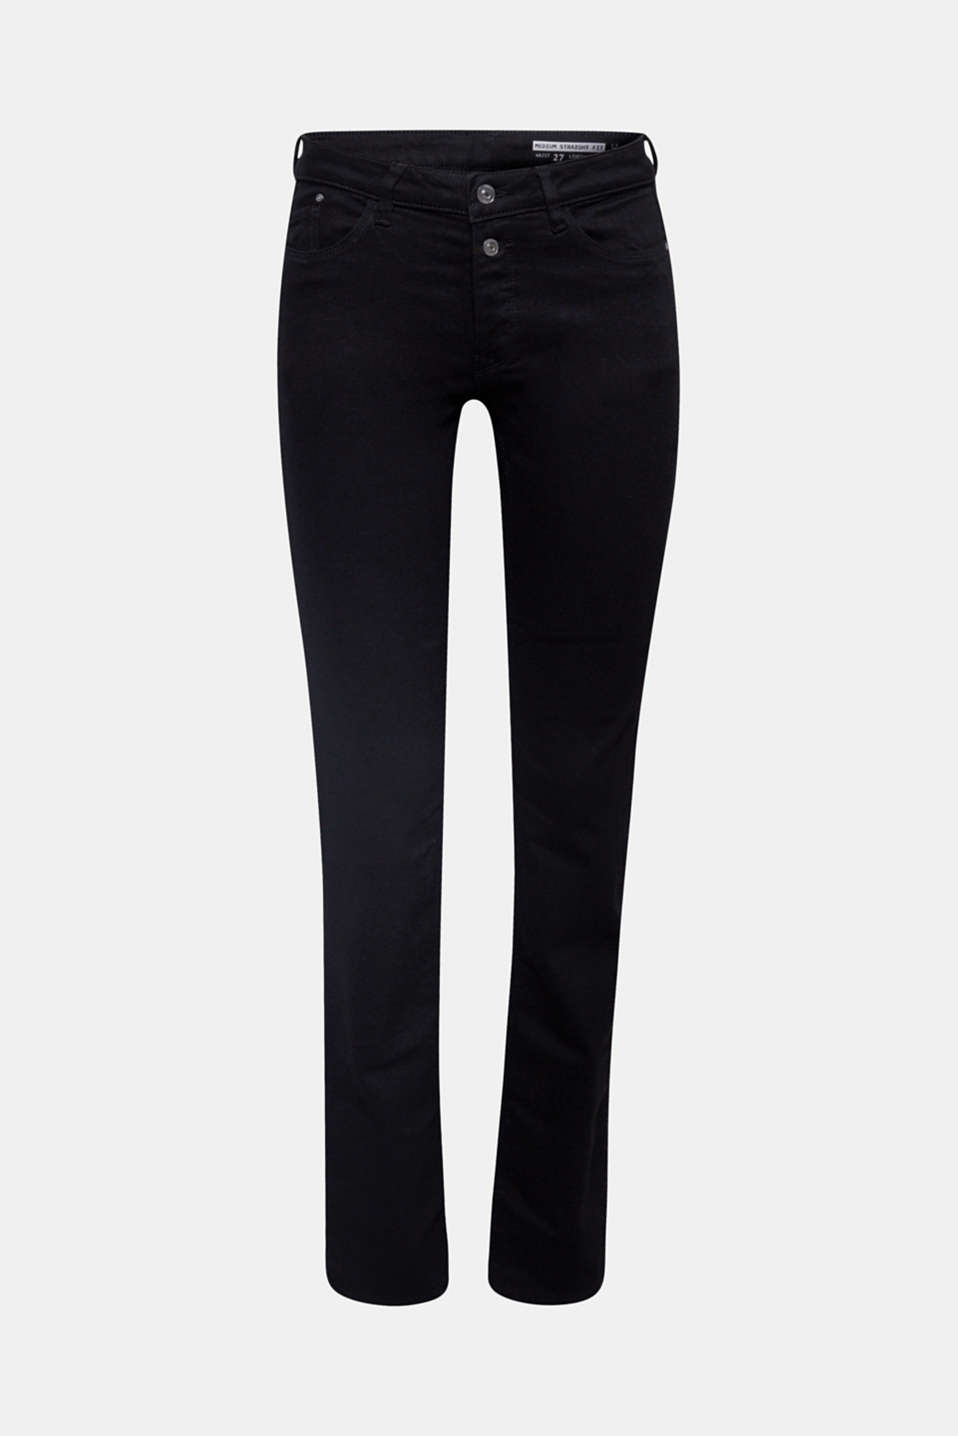 Everything works with these super trendy basic jeans: bold stretch denim in a timeless style with double buttons and a straight fit.